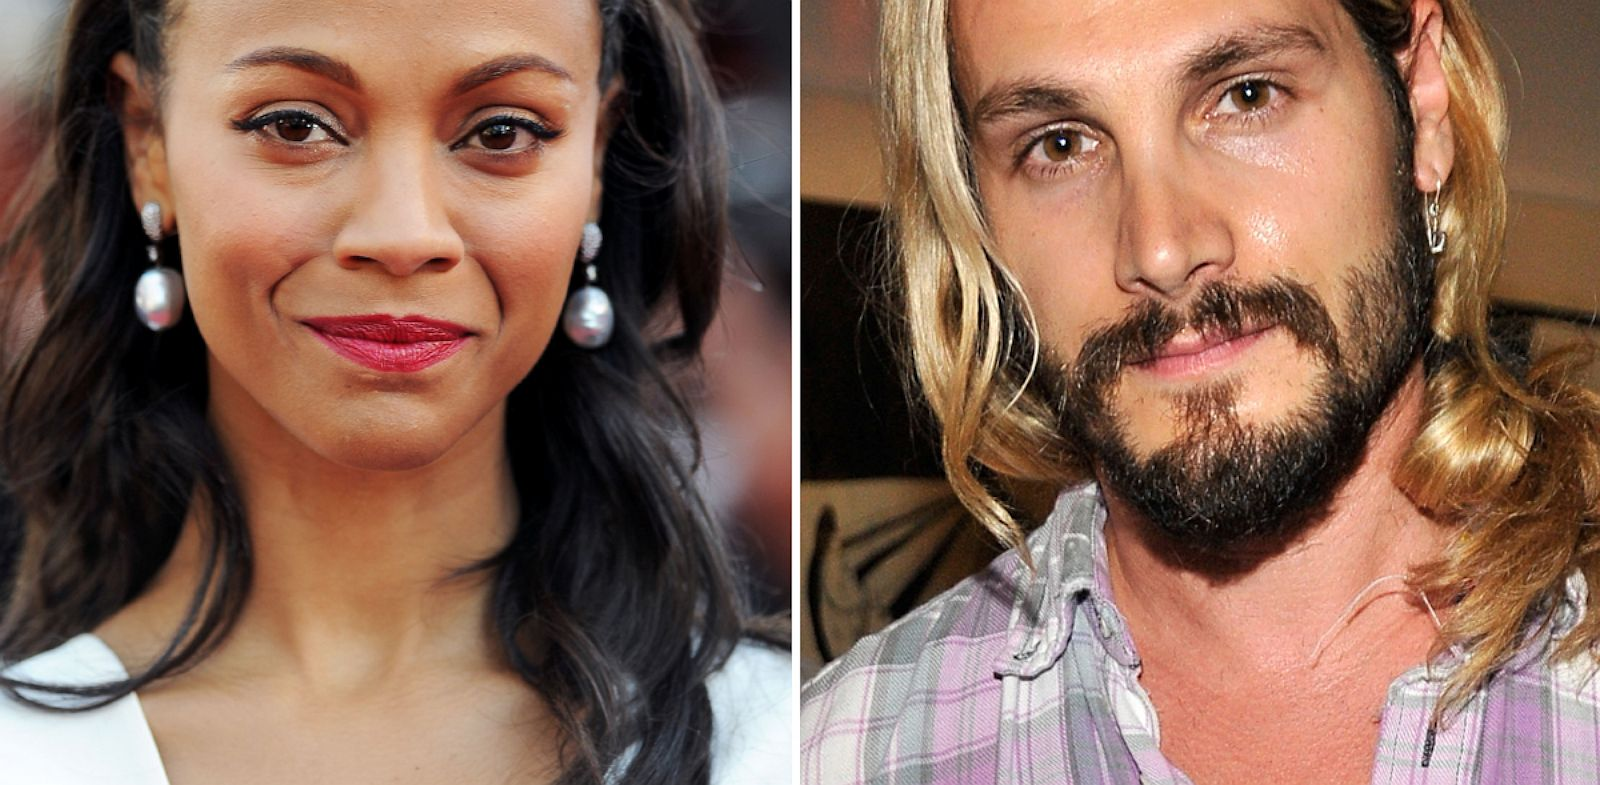 PHOTO: Zoe Saldana, left, and Marco Perego, were married in a secret wedding.